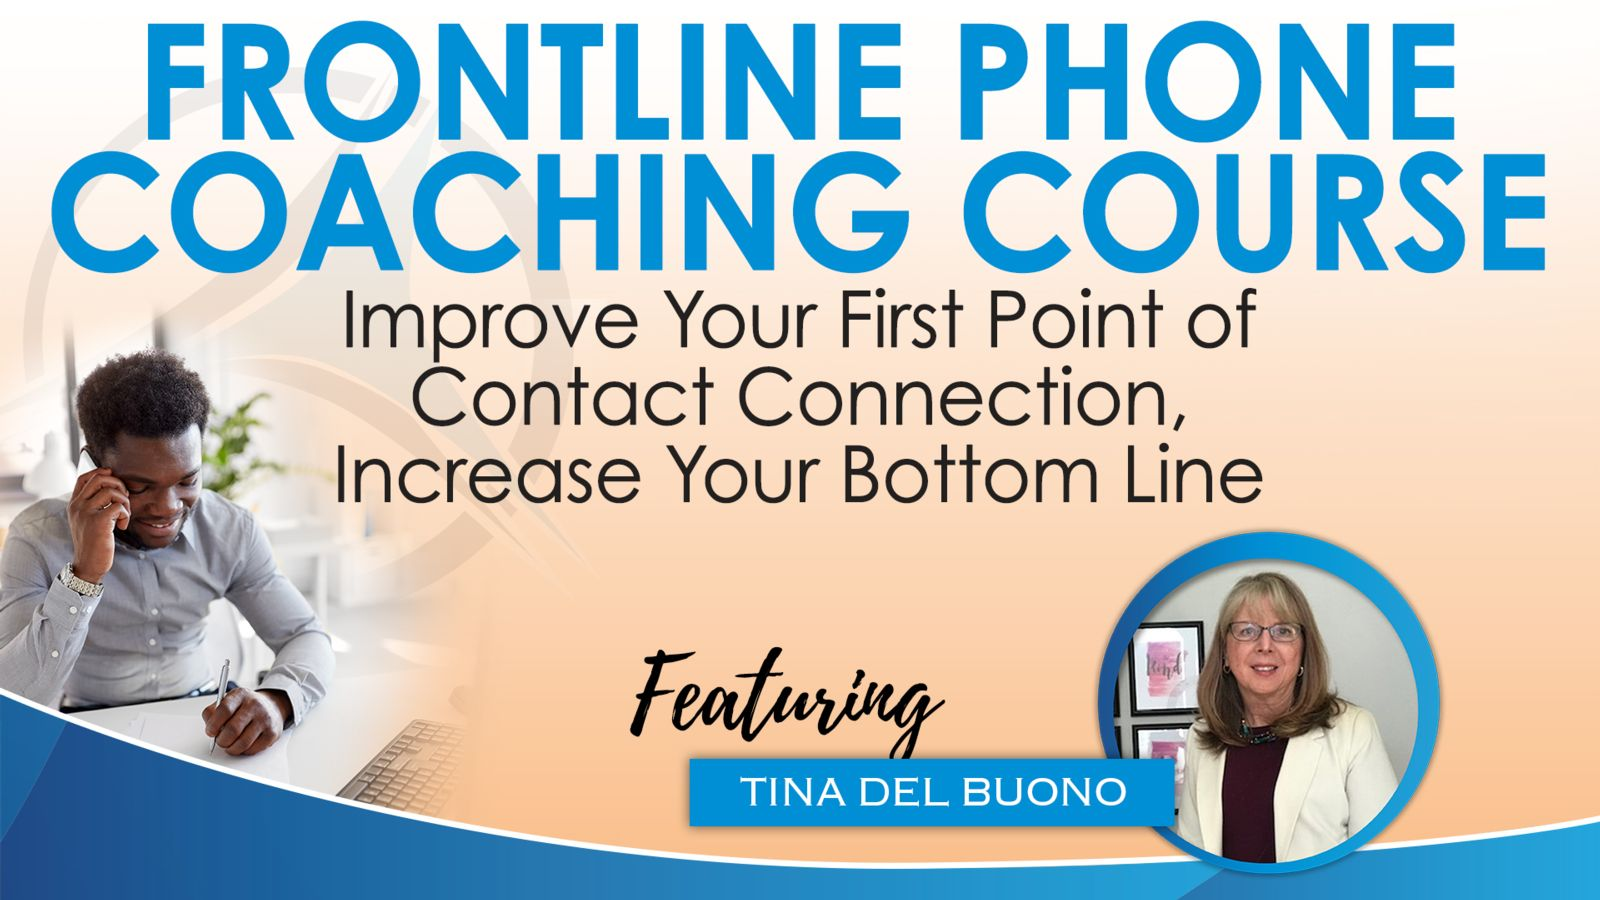 Frontline Phone Coaching Course